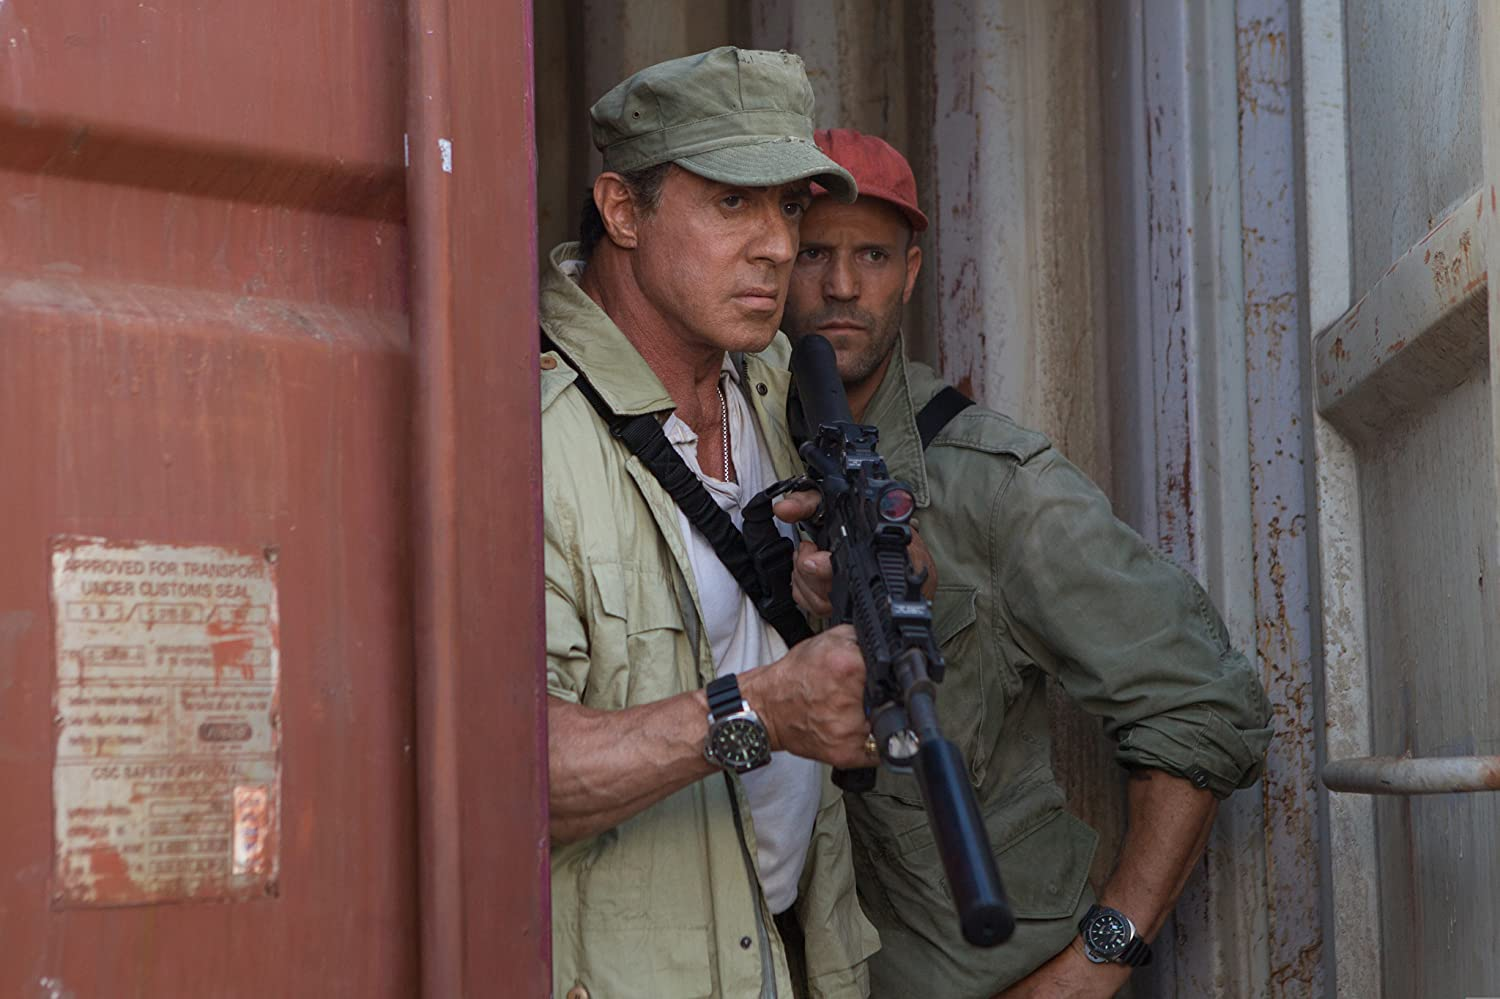 Sylvester Stallone and Jason Statham in The Expendables 3 (2014)